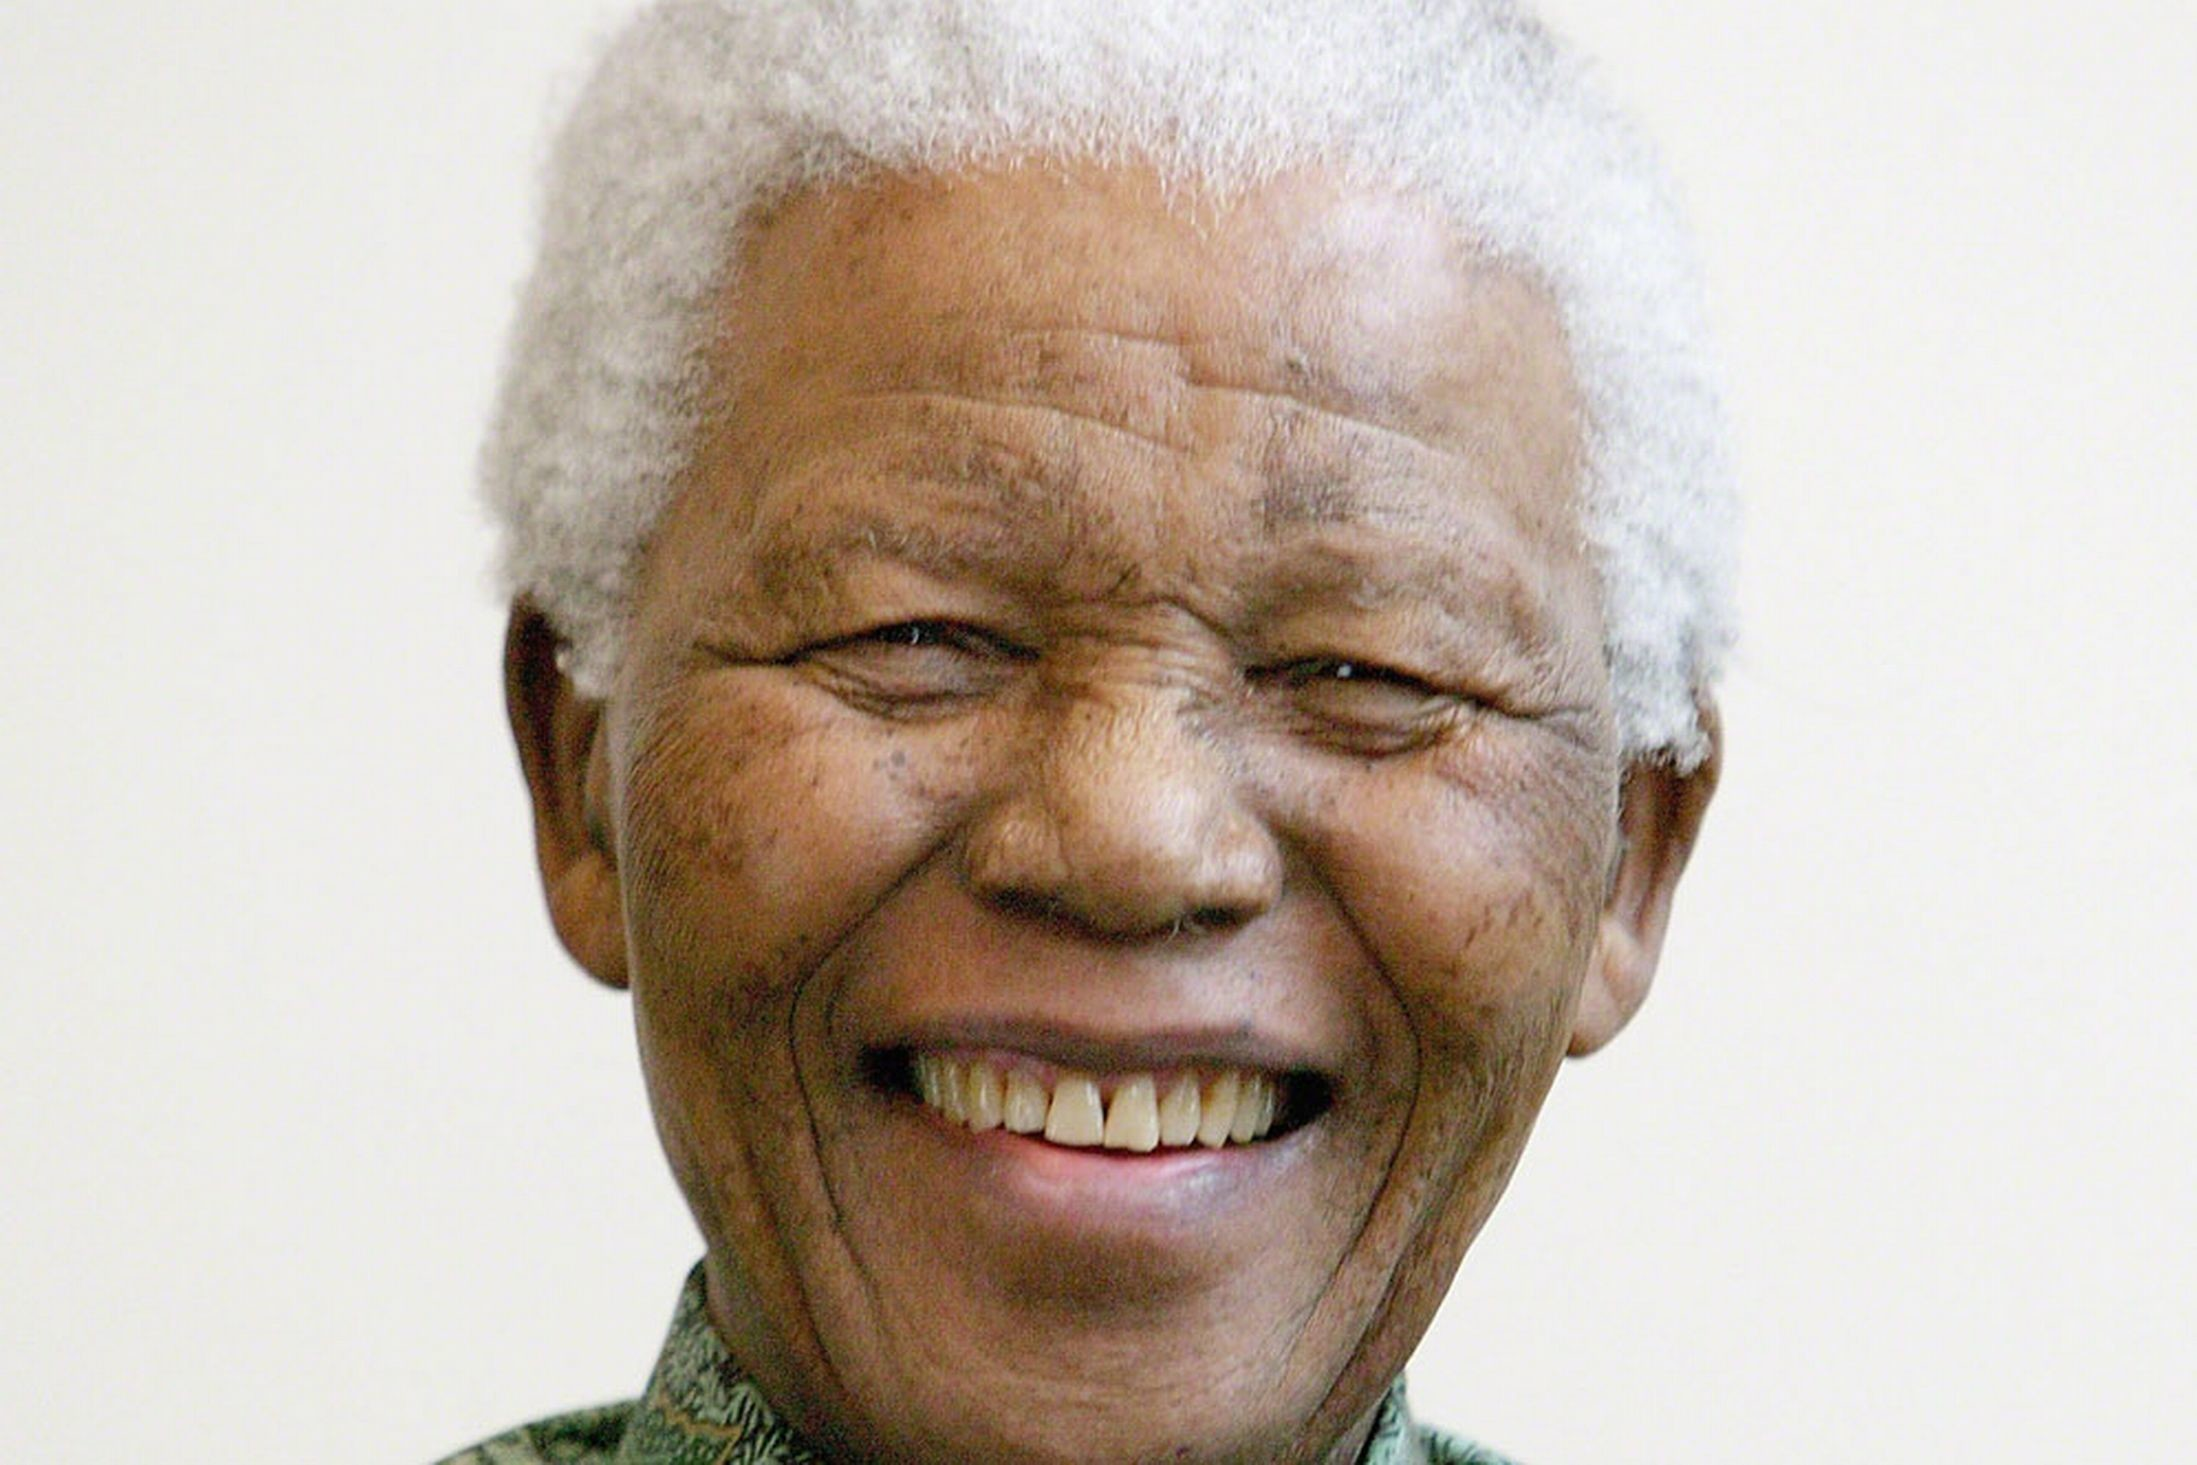 Neil Phillips quizzed for 8 HOURS by police after Nelson Pictures of the late nelson mandela